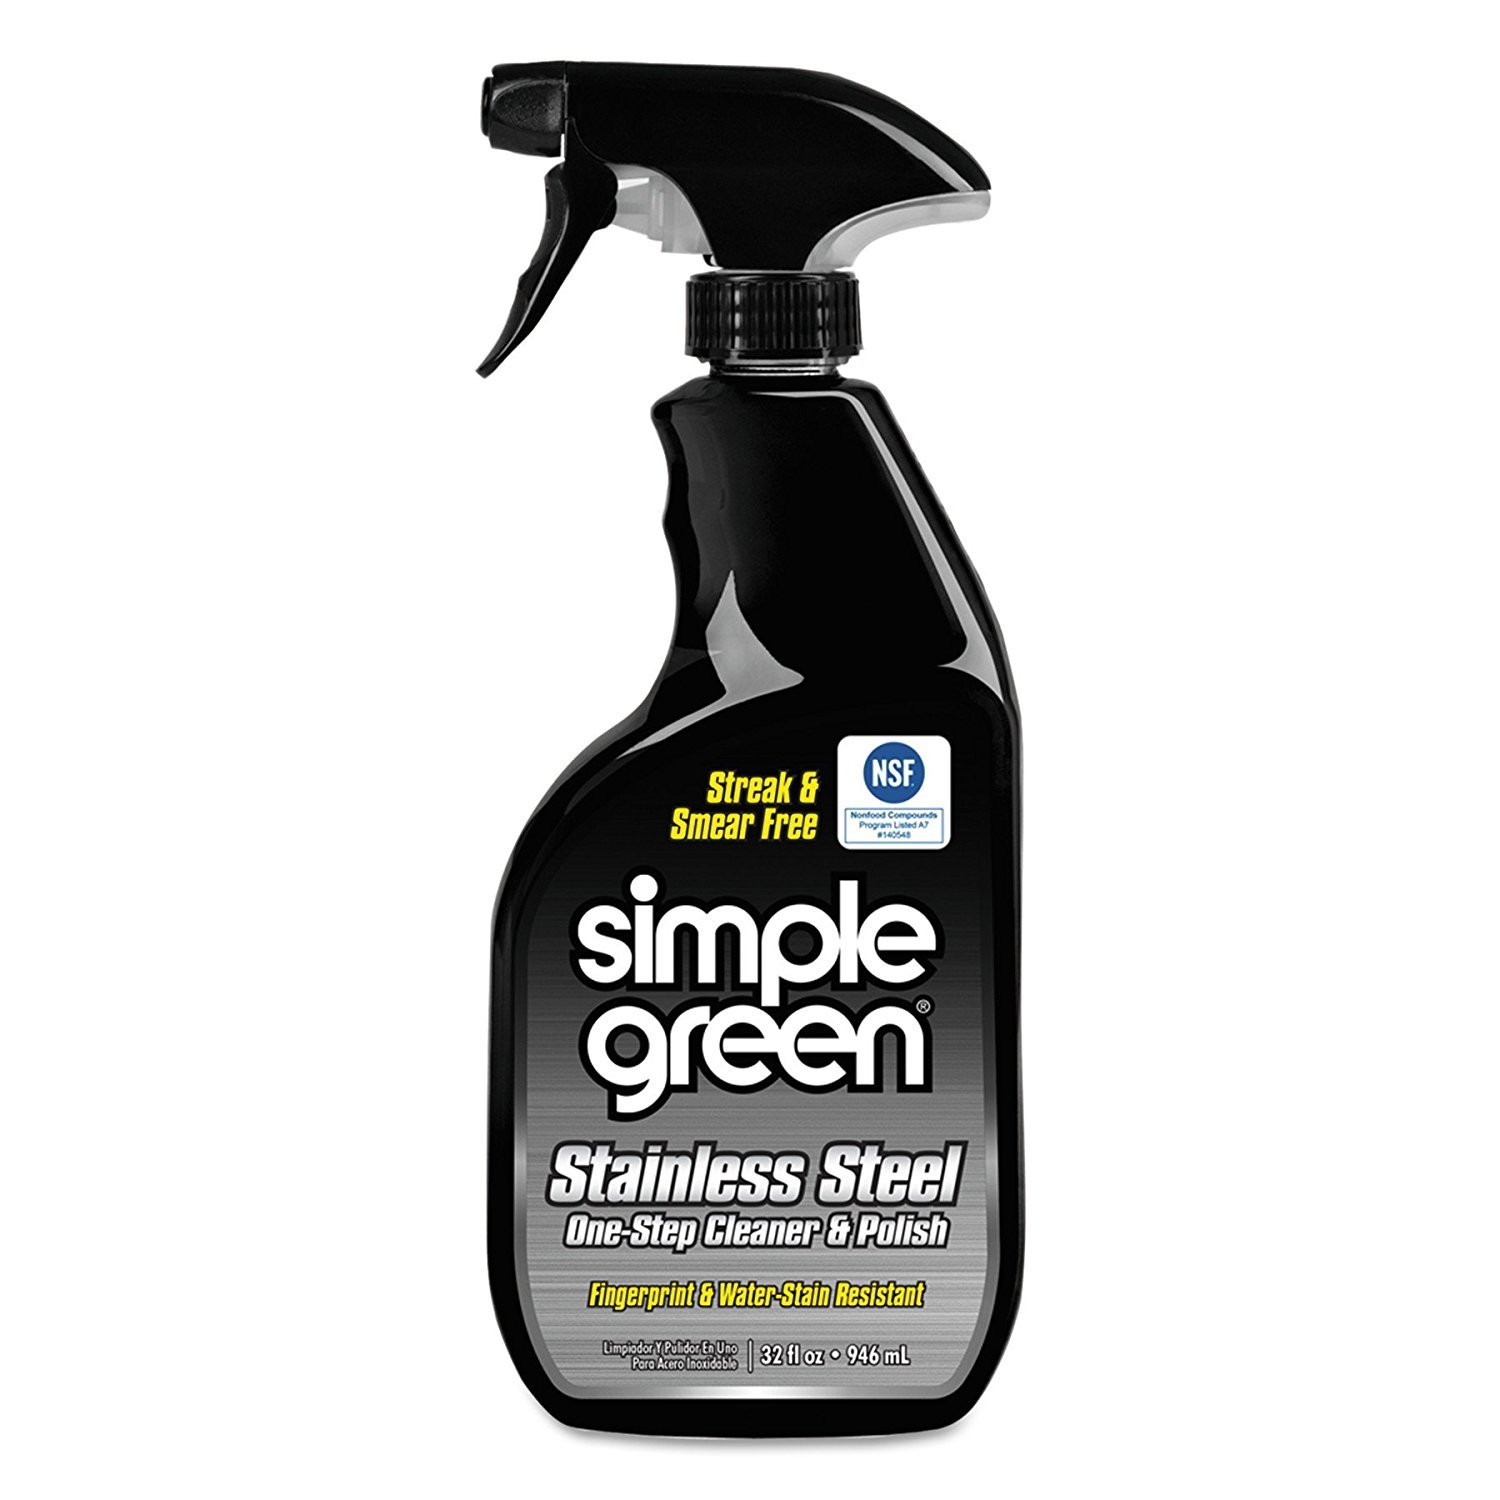 Simple Green 18300CT Stainless Steel One-Step Cleaner & Polish, 32oz Spray Bottle (24 pack)